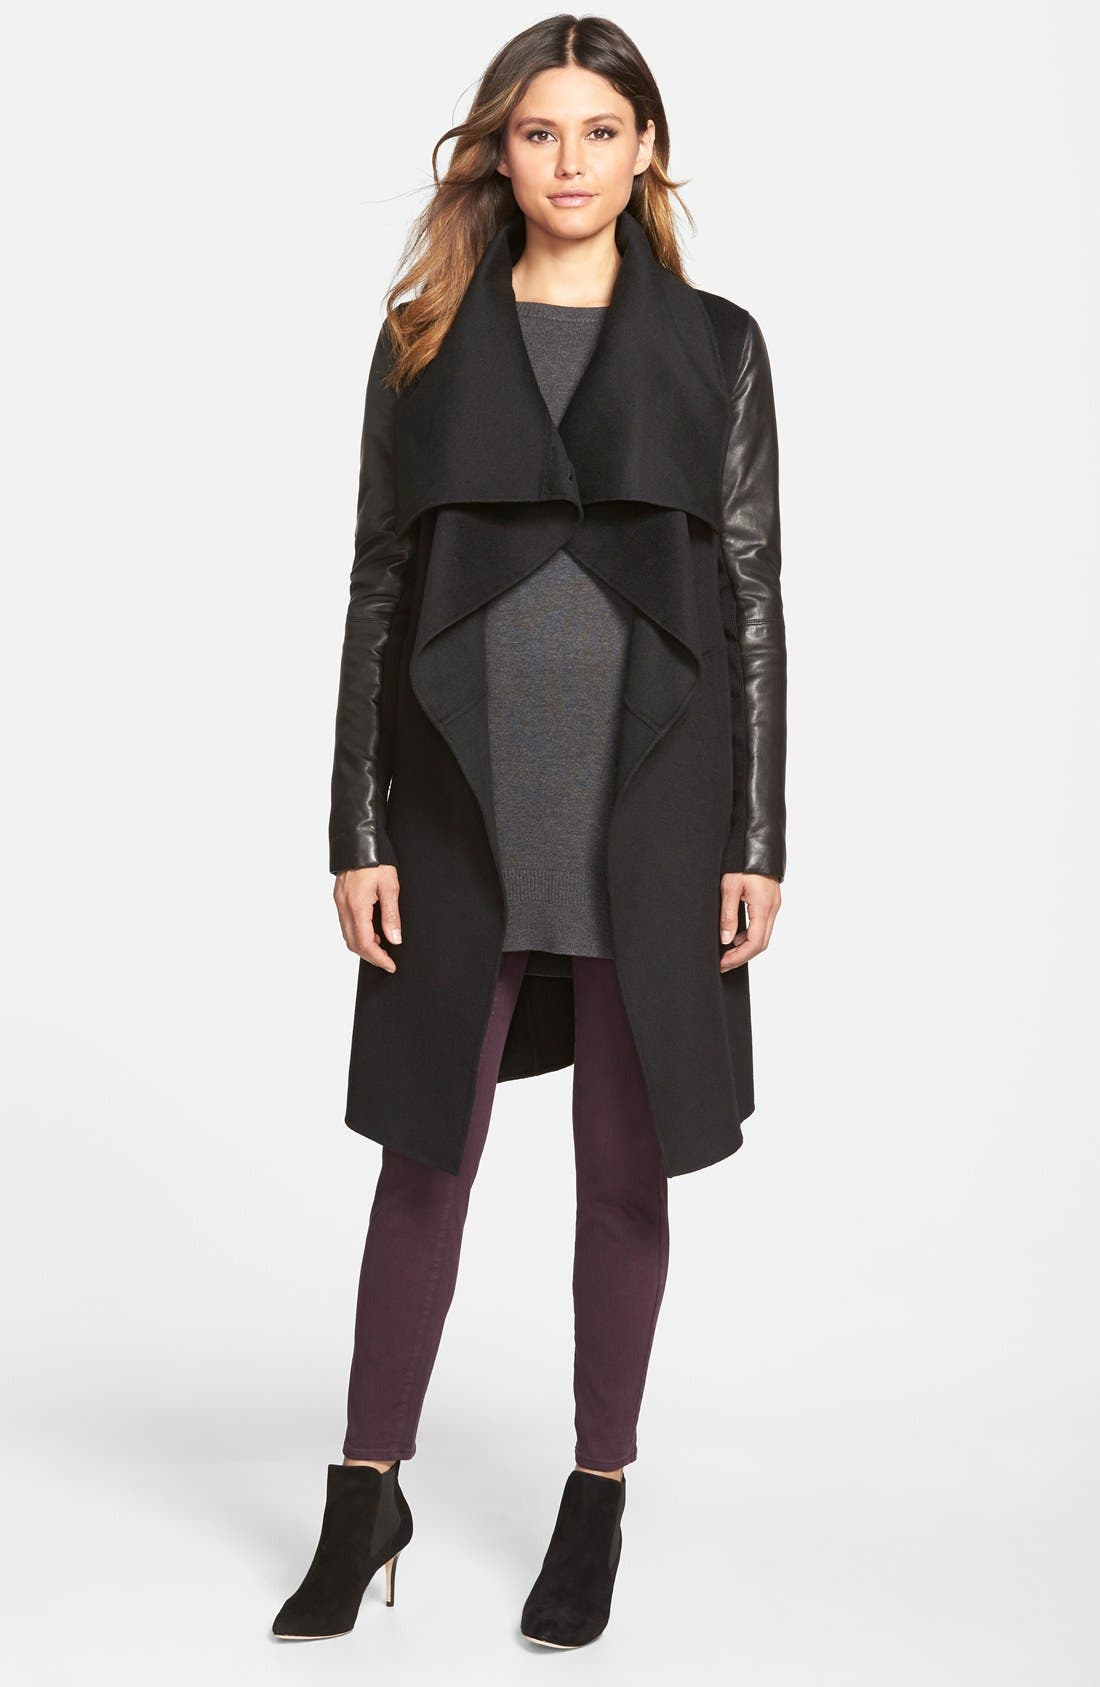 Wool Blend Coat with Leather Sleeves,                             Main thumbnail 1, color,                             001